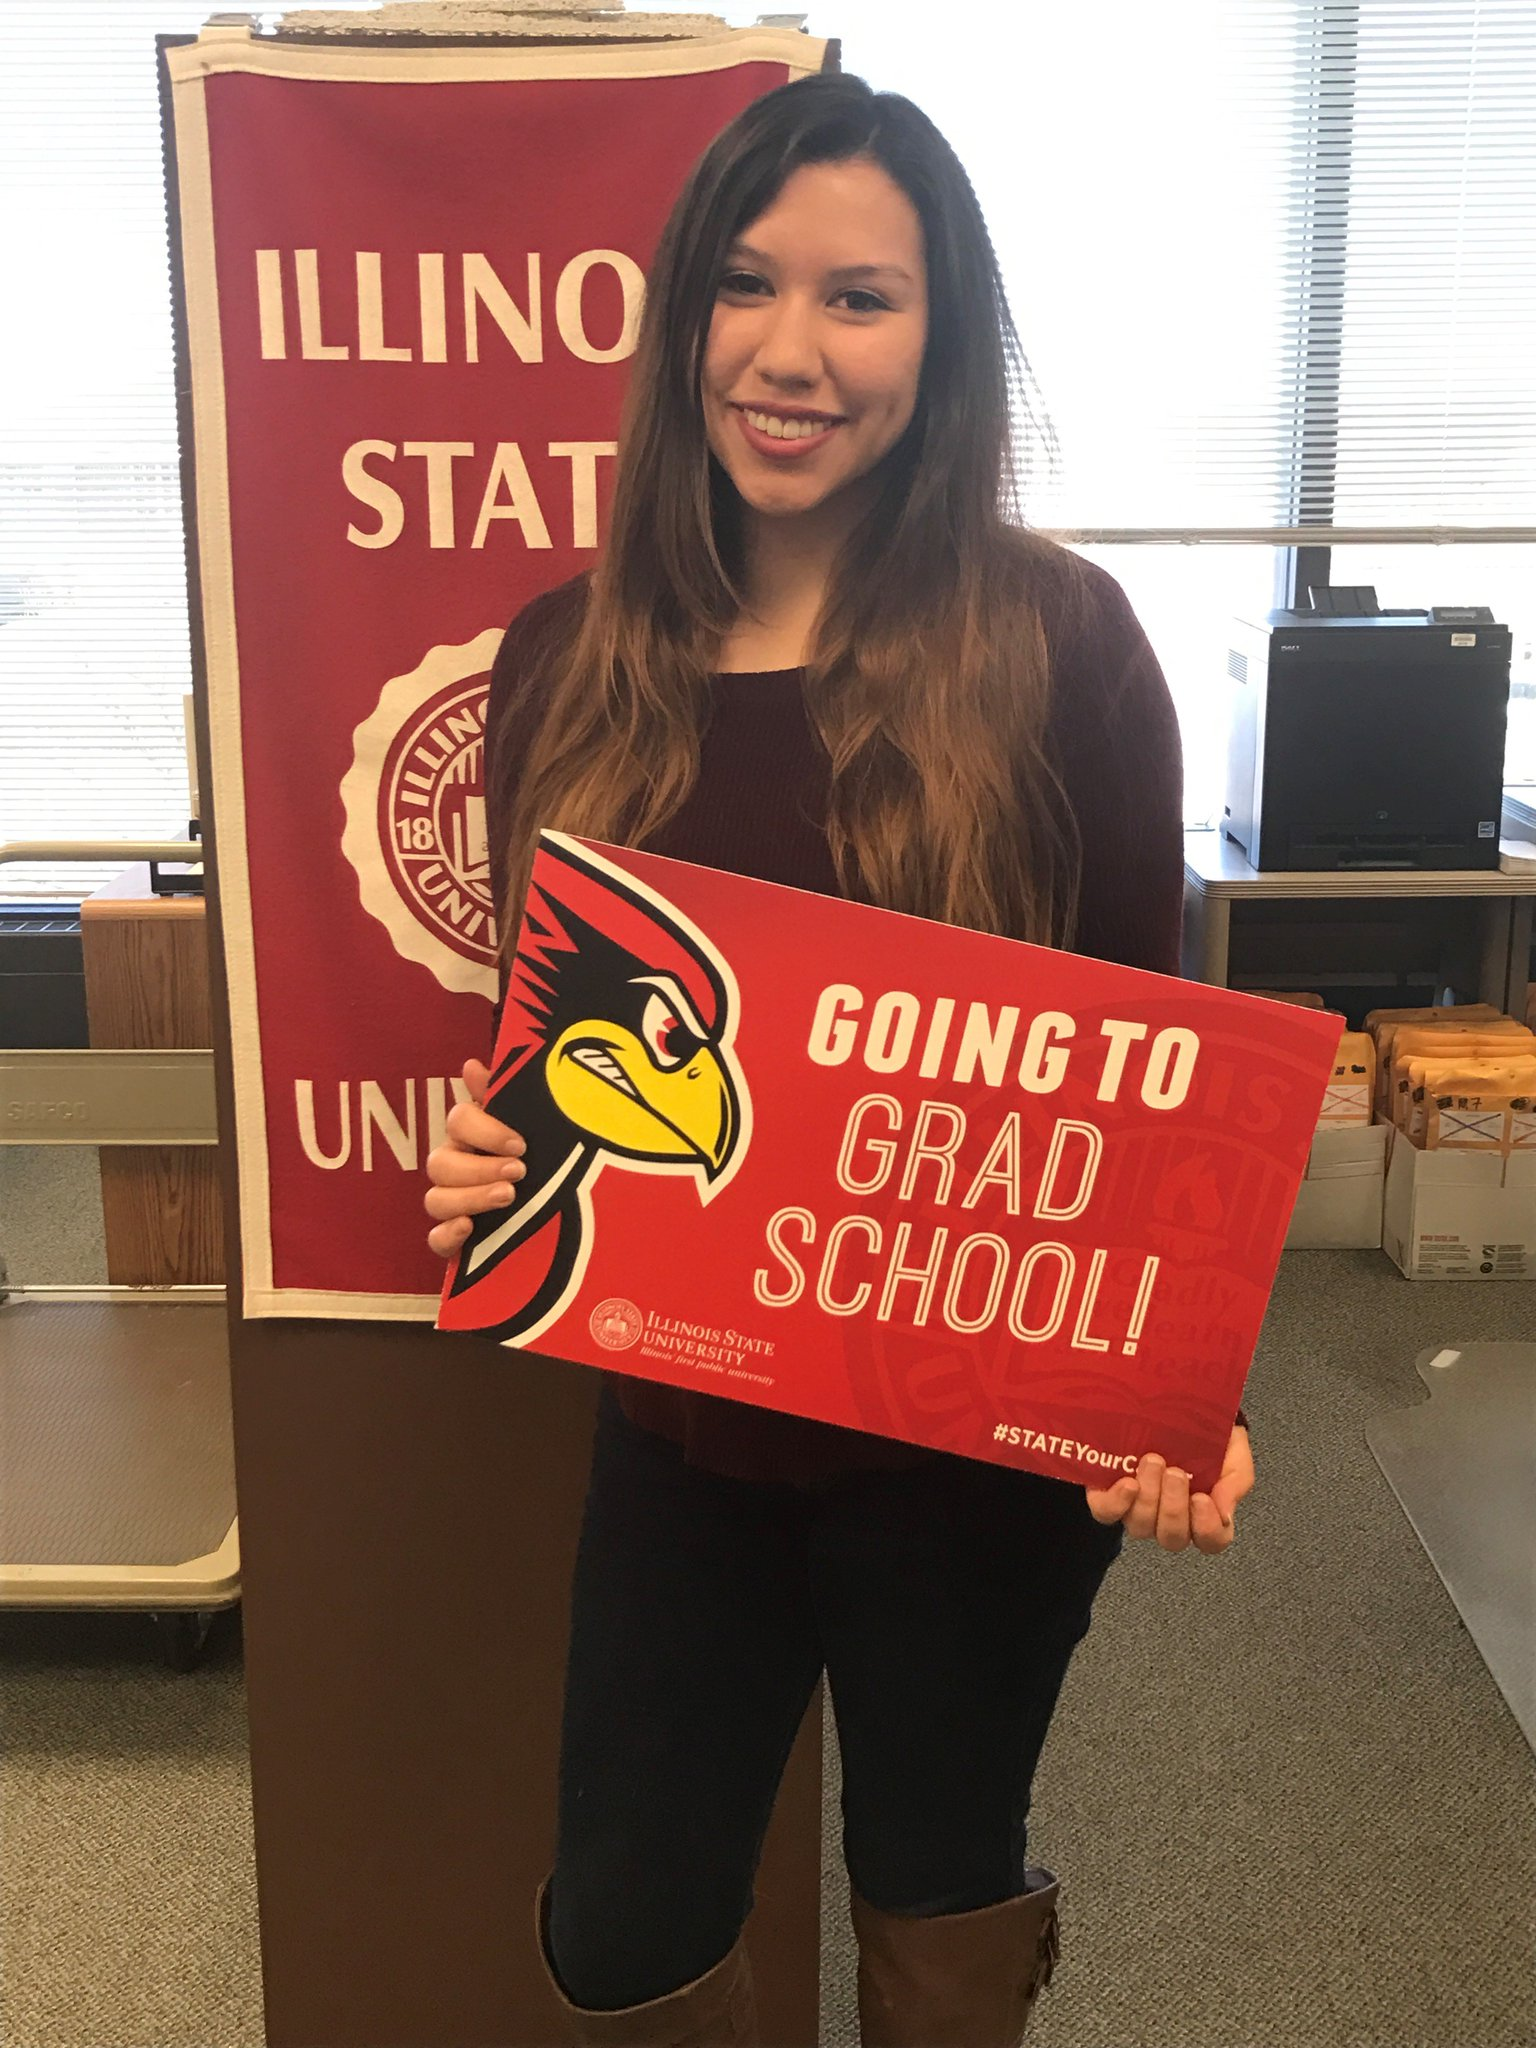 Congrats to Nicole Landa on getting into grad school! #STATEYourCareer https://t.co/vvzhB1j88n